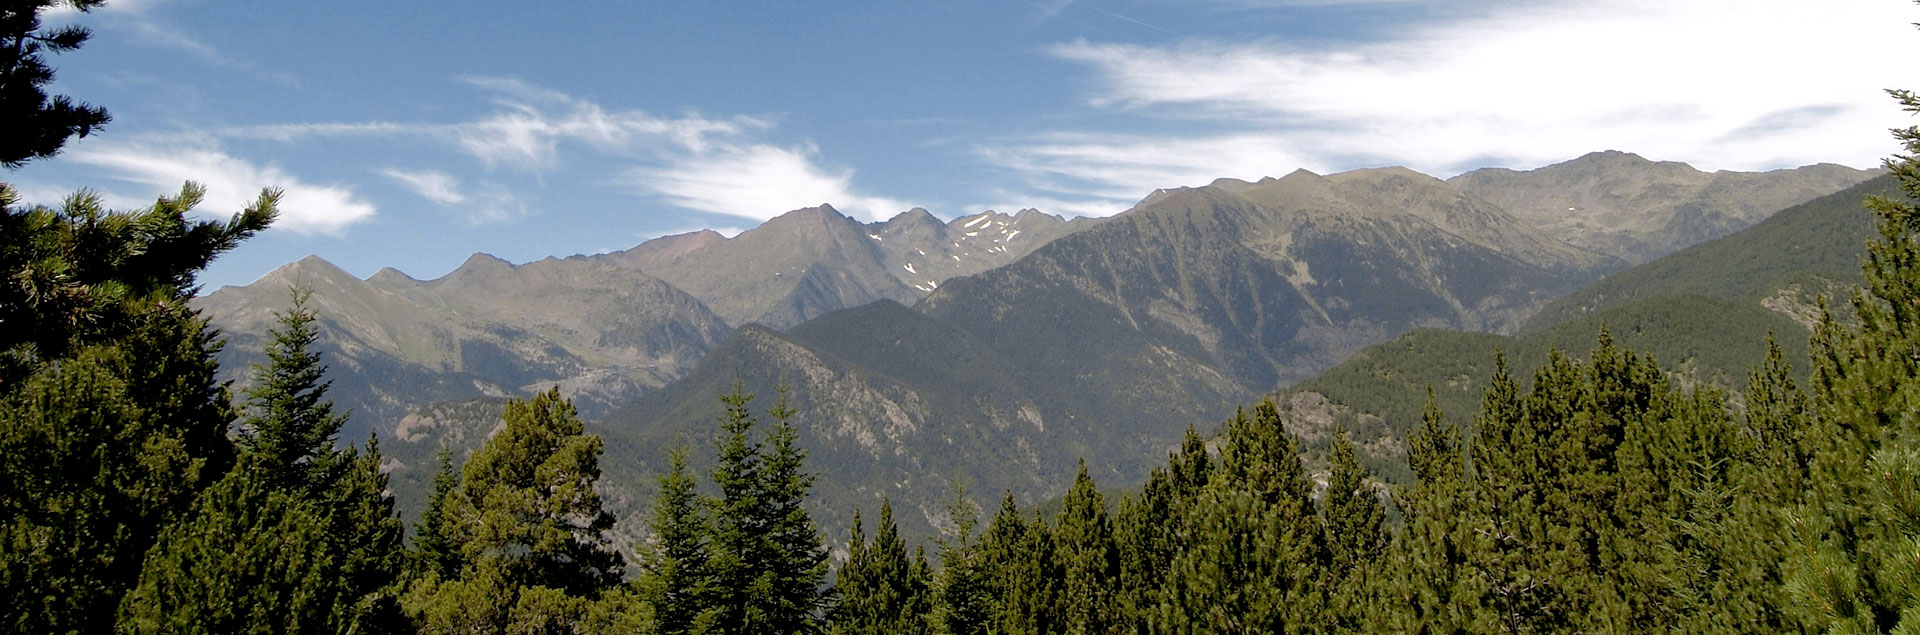 Andorra a place to be discovered hiking during summer